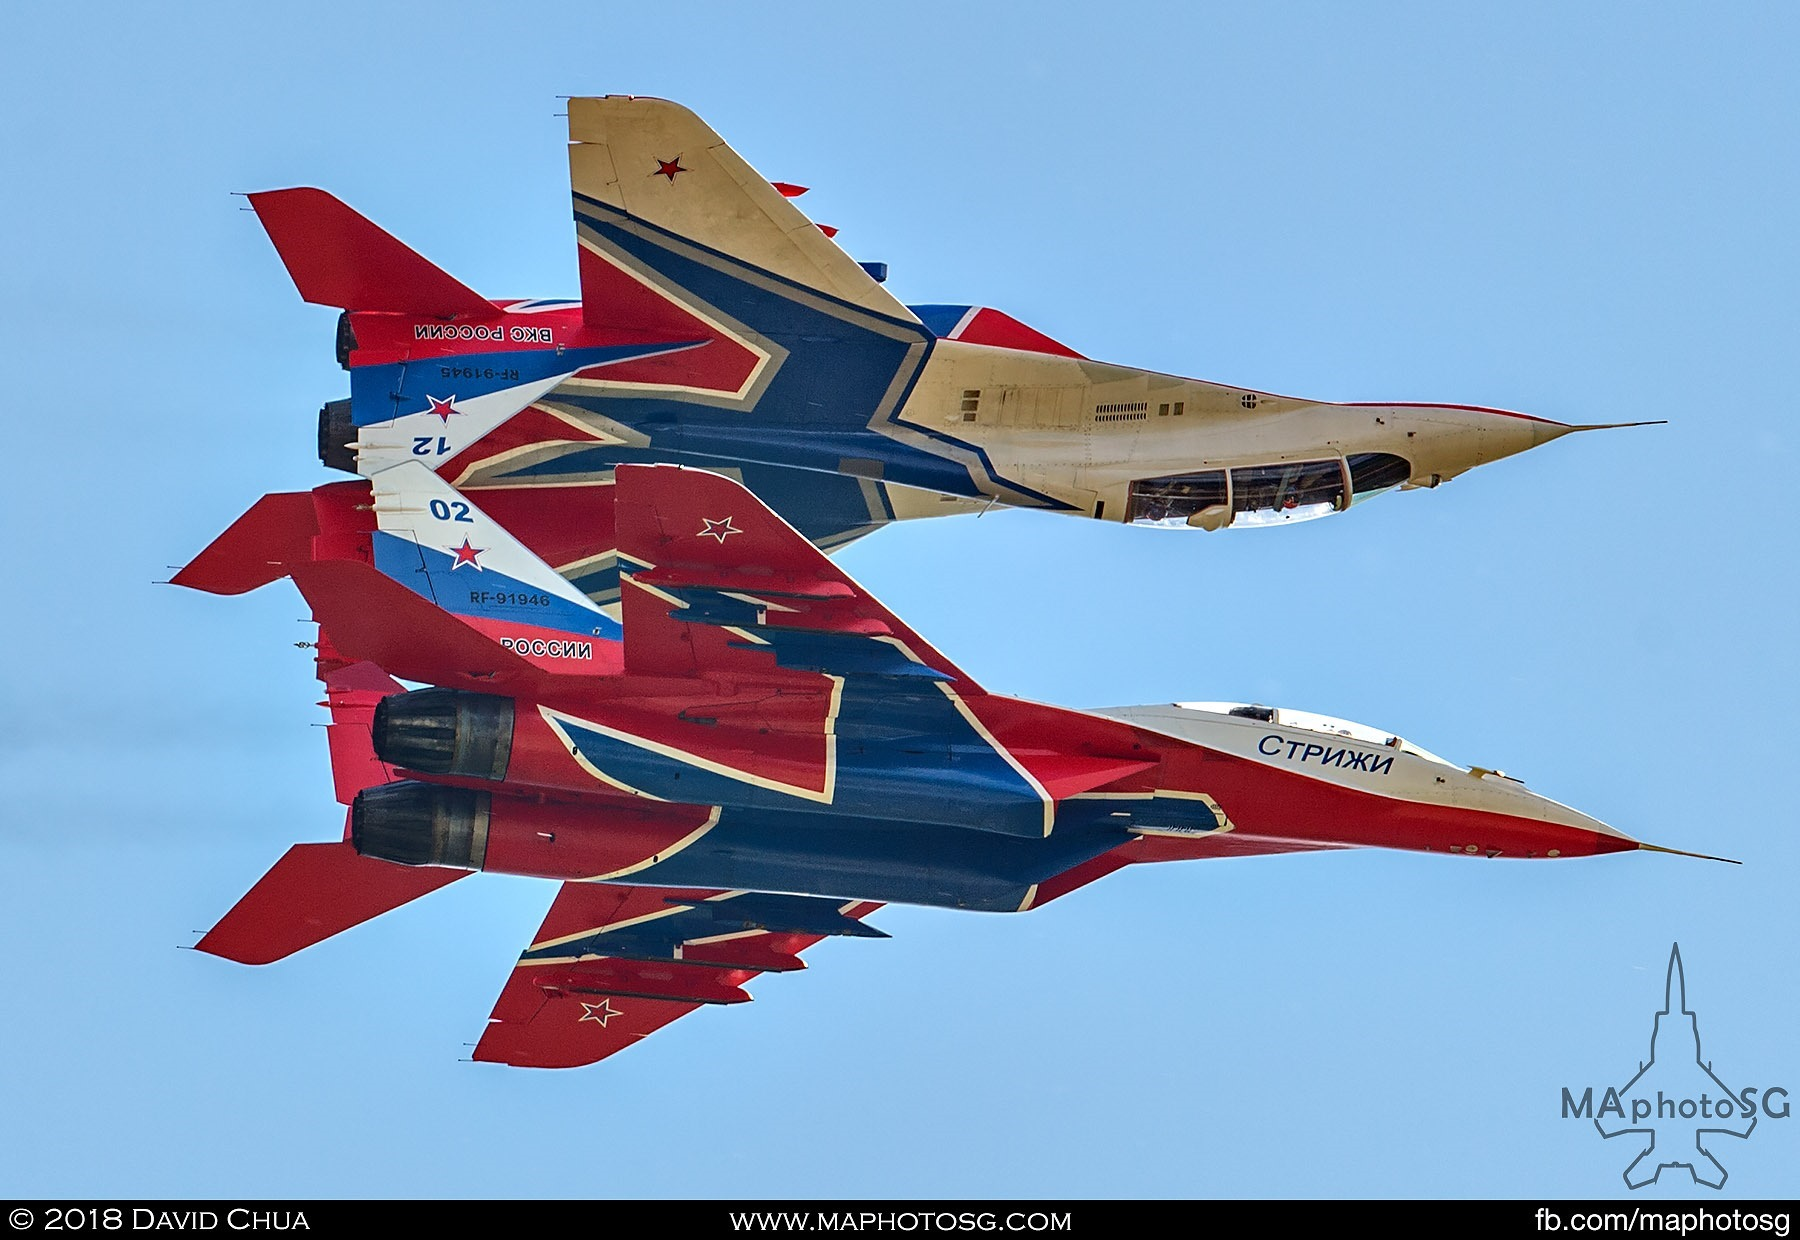 34. Mirror pass performed by the MiG-29s of the Swifts